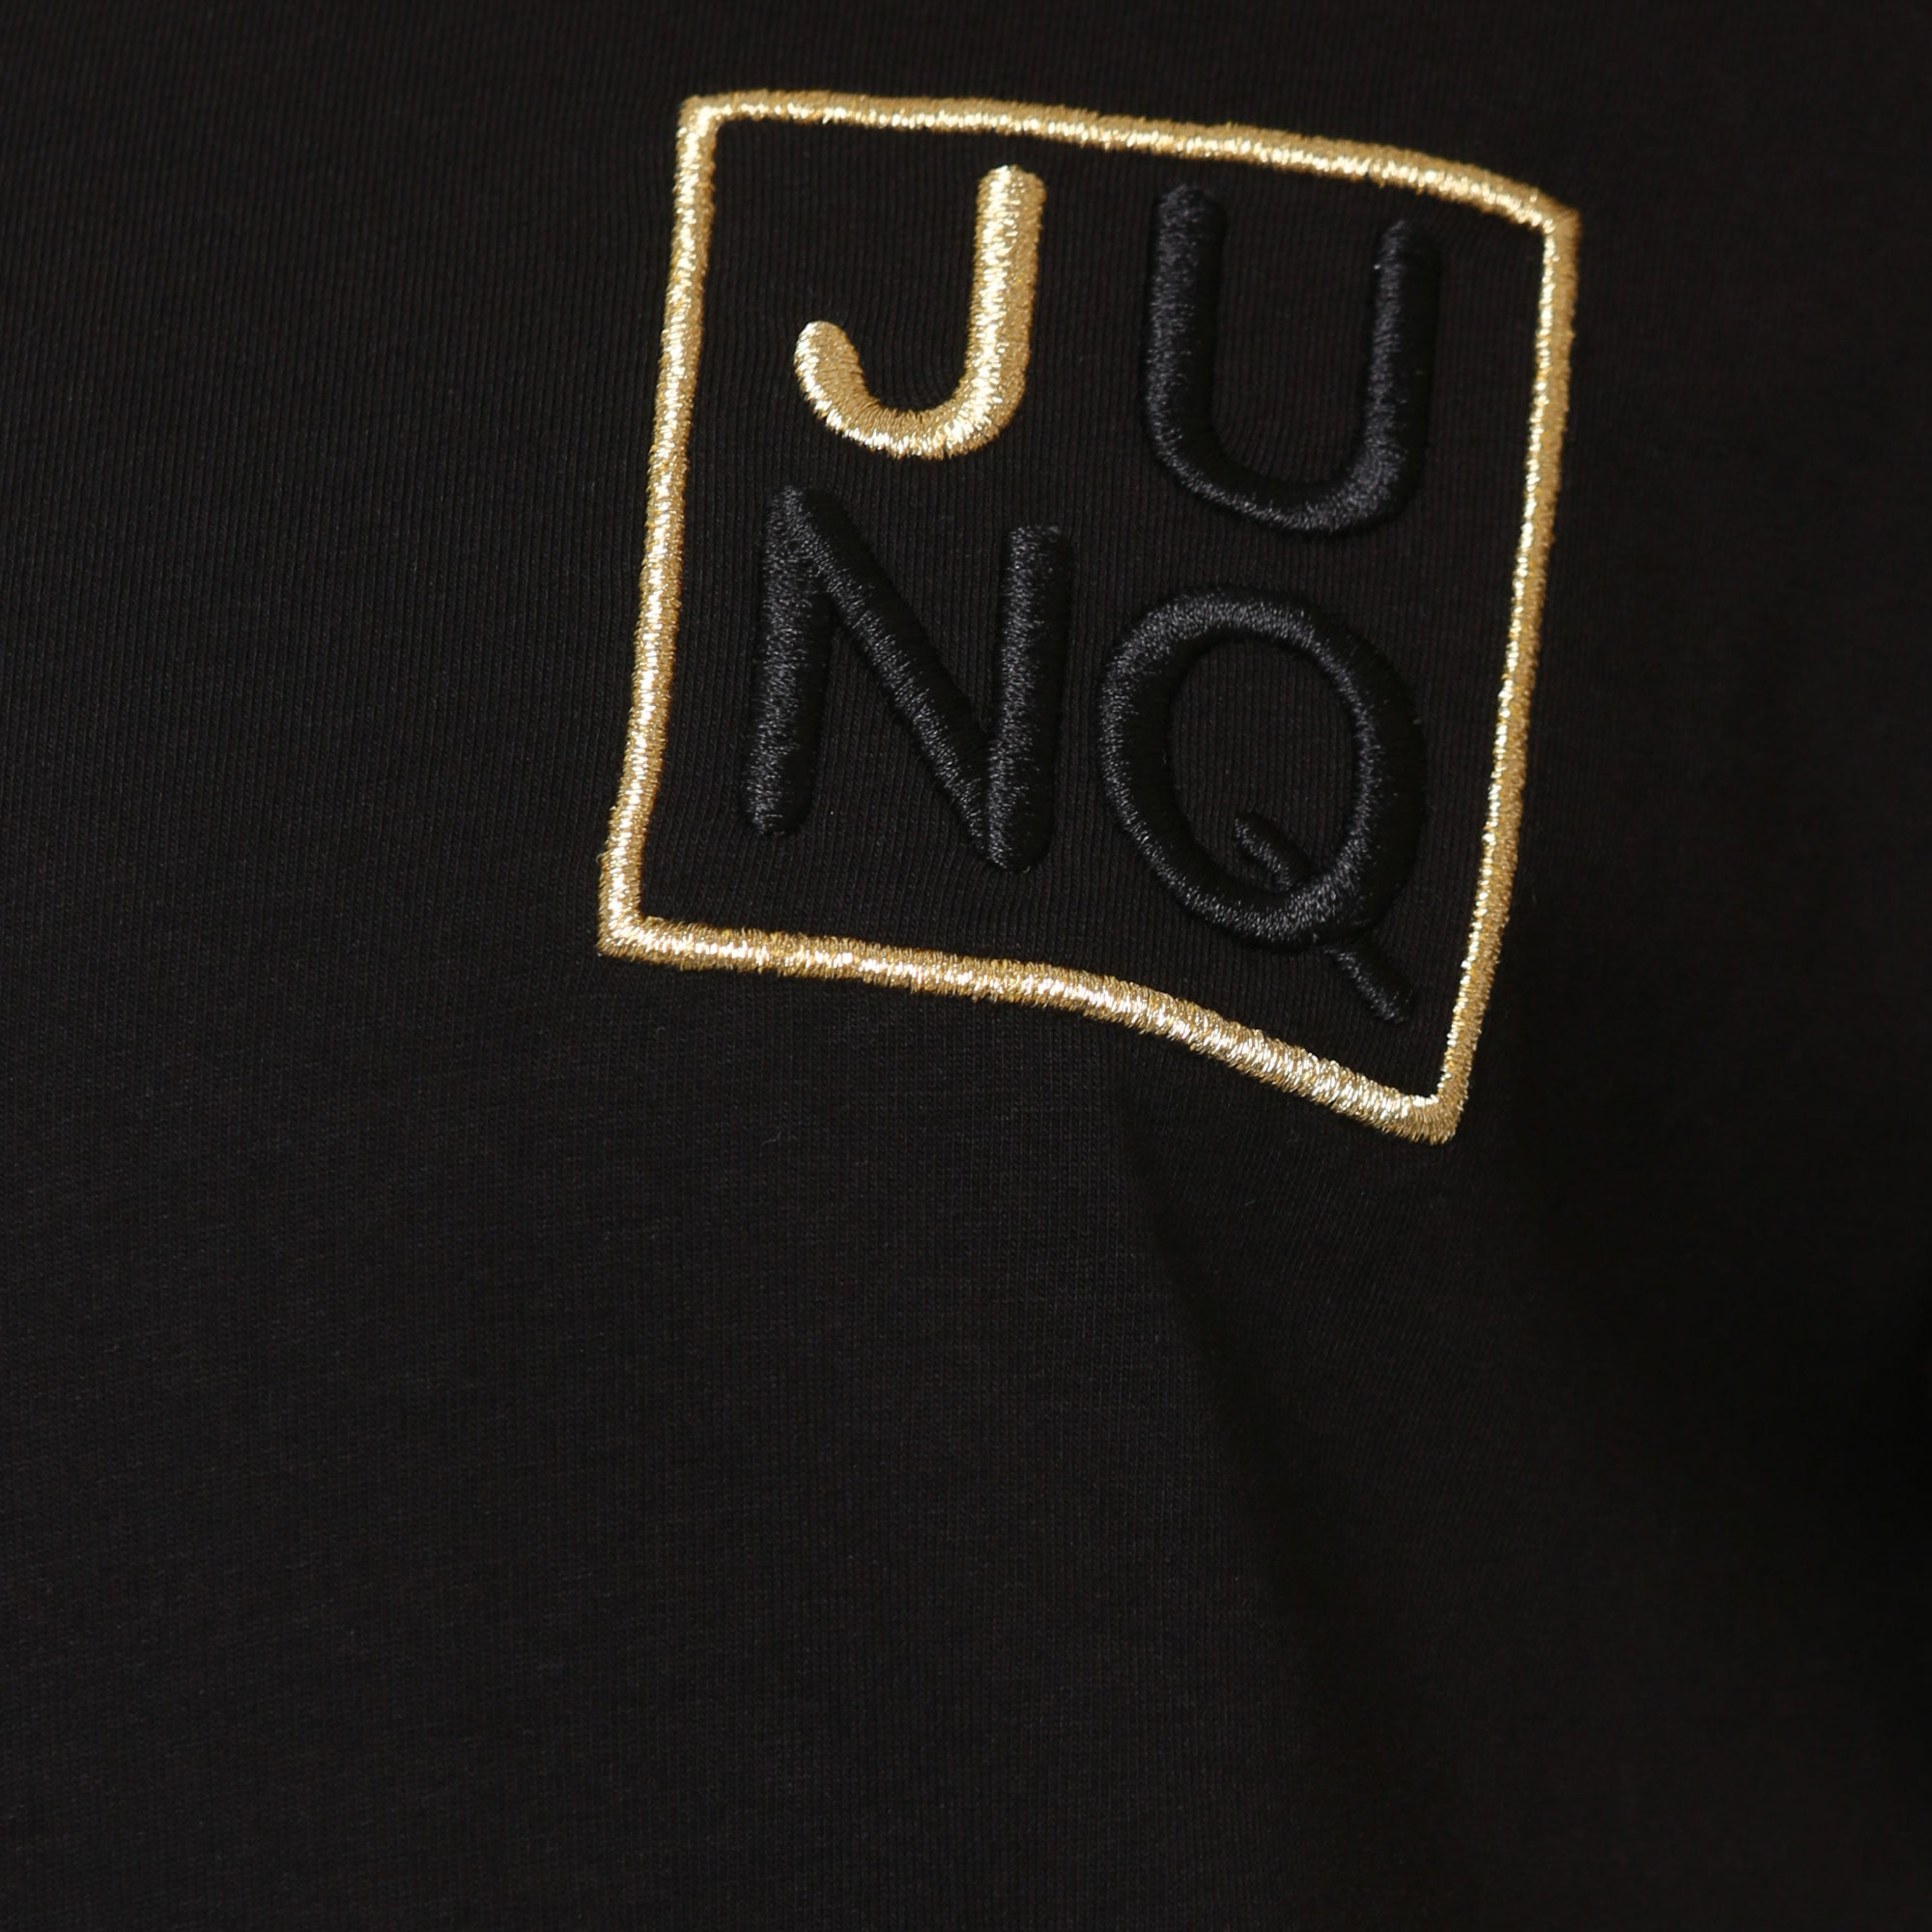 Style: Anhur 99 Luxury Crew Neck T-Shirt - Black - Junq Couture